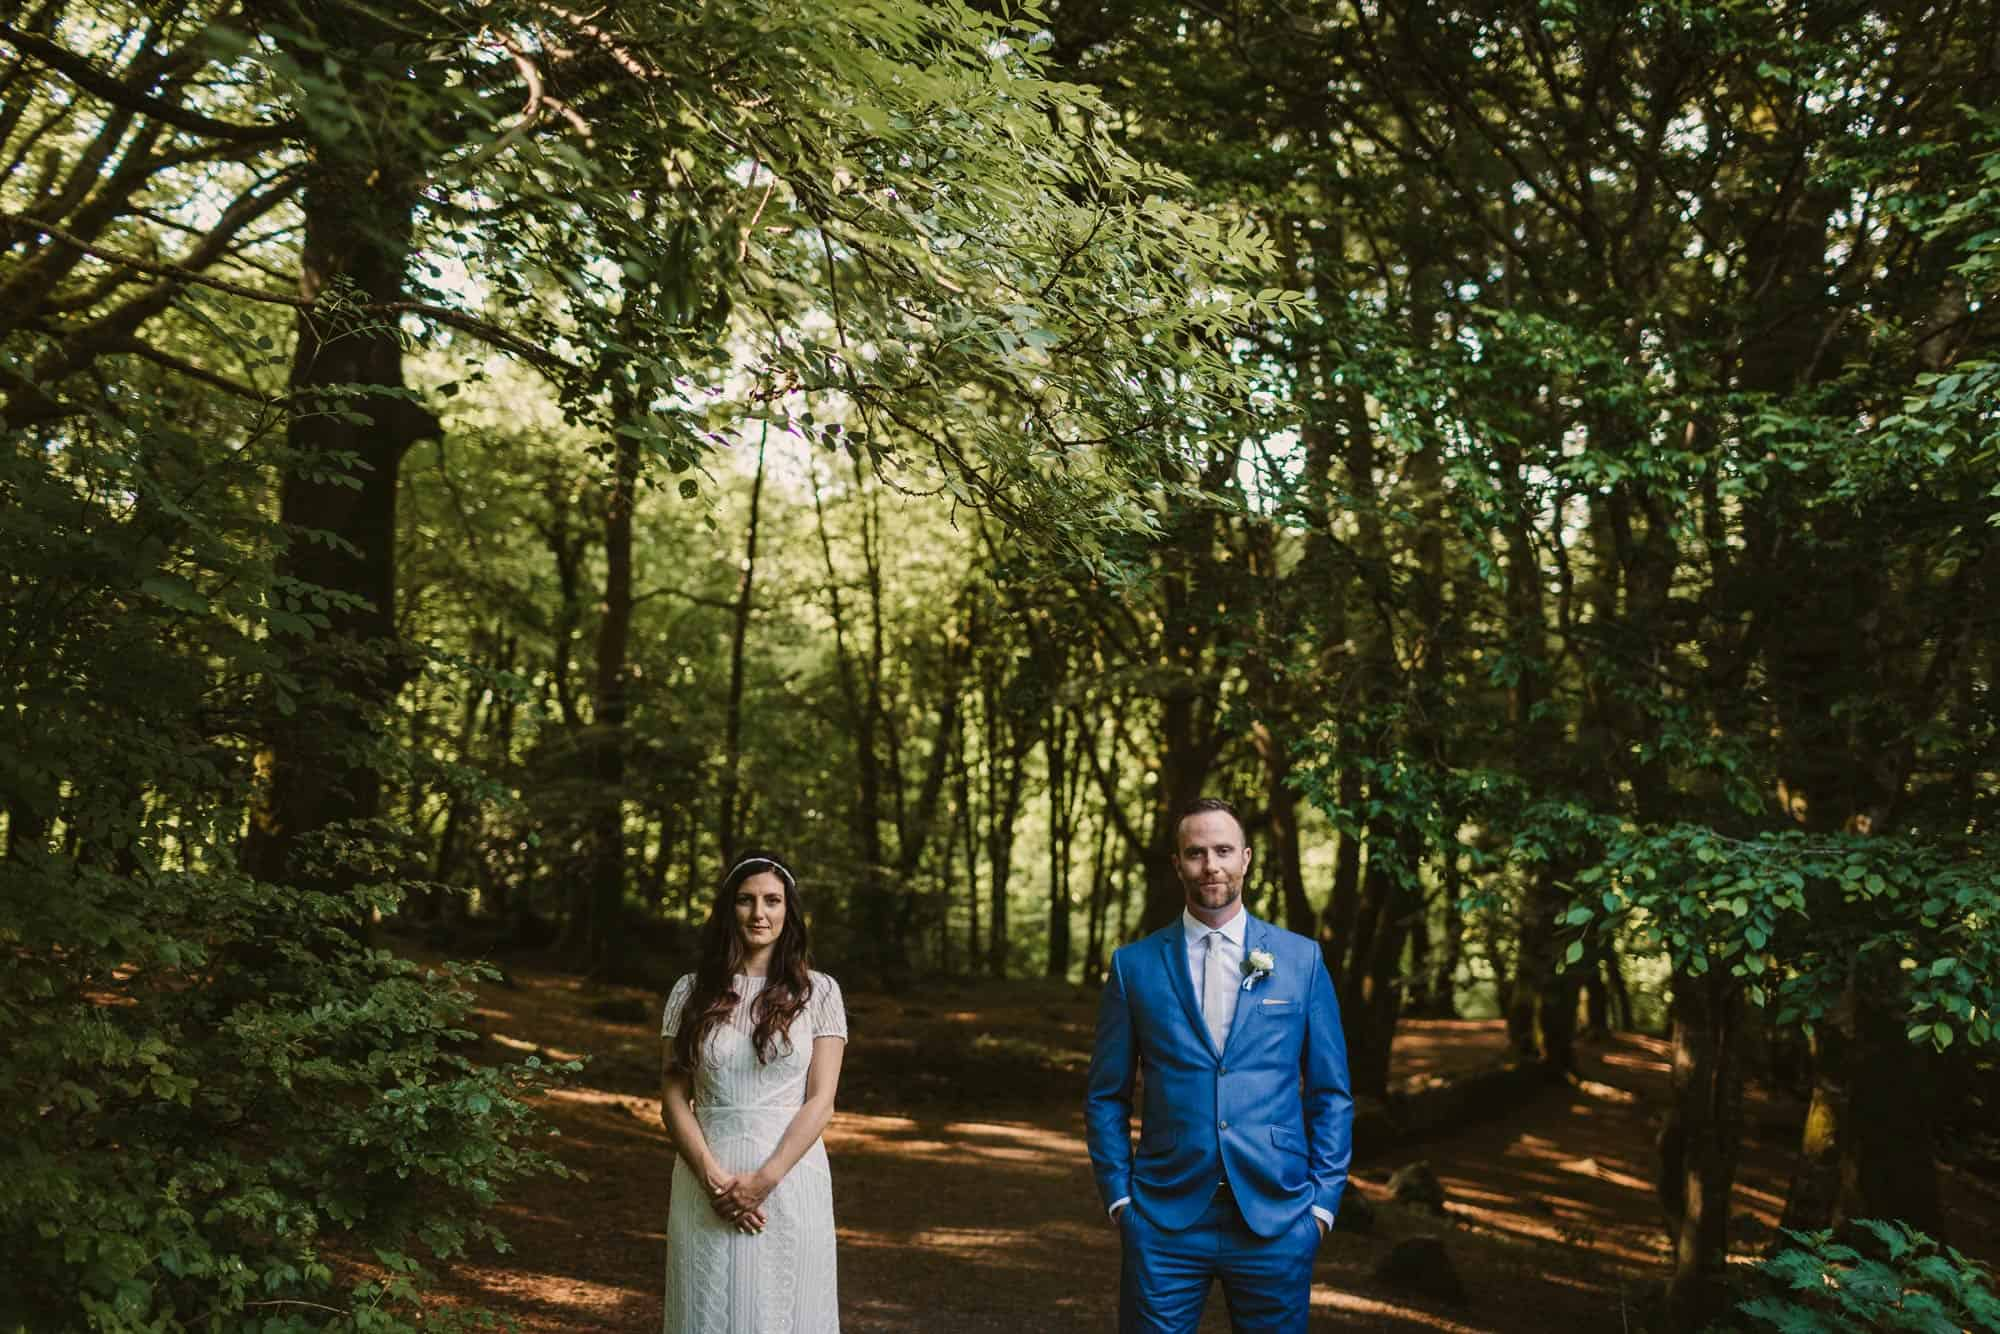 Elopement videographer Ireland, couple in forest posing